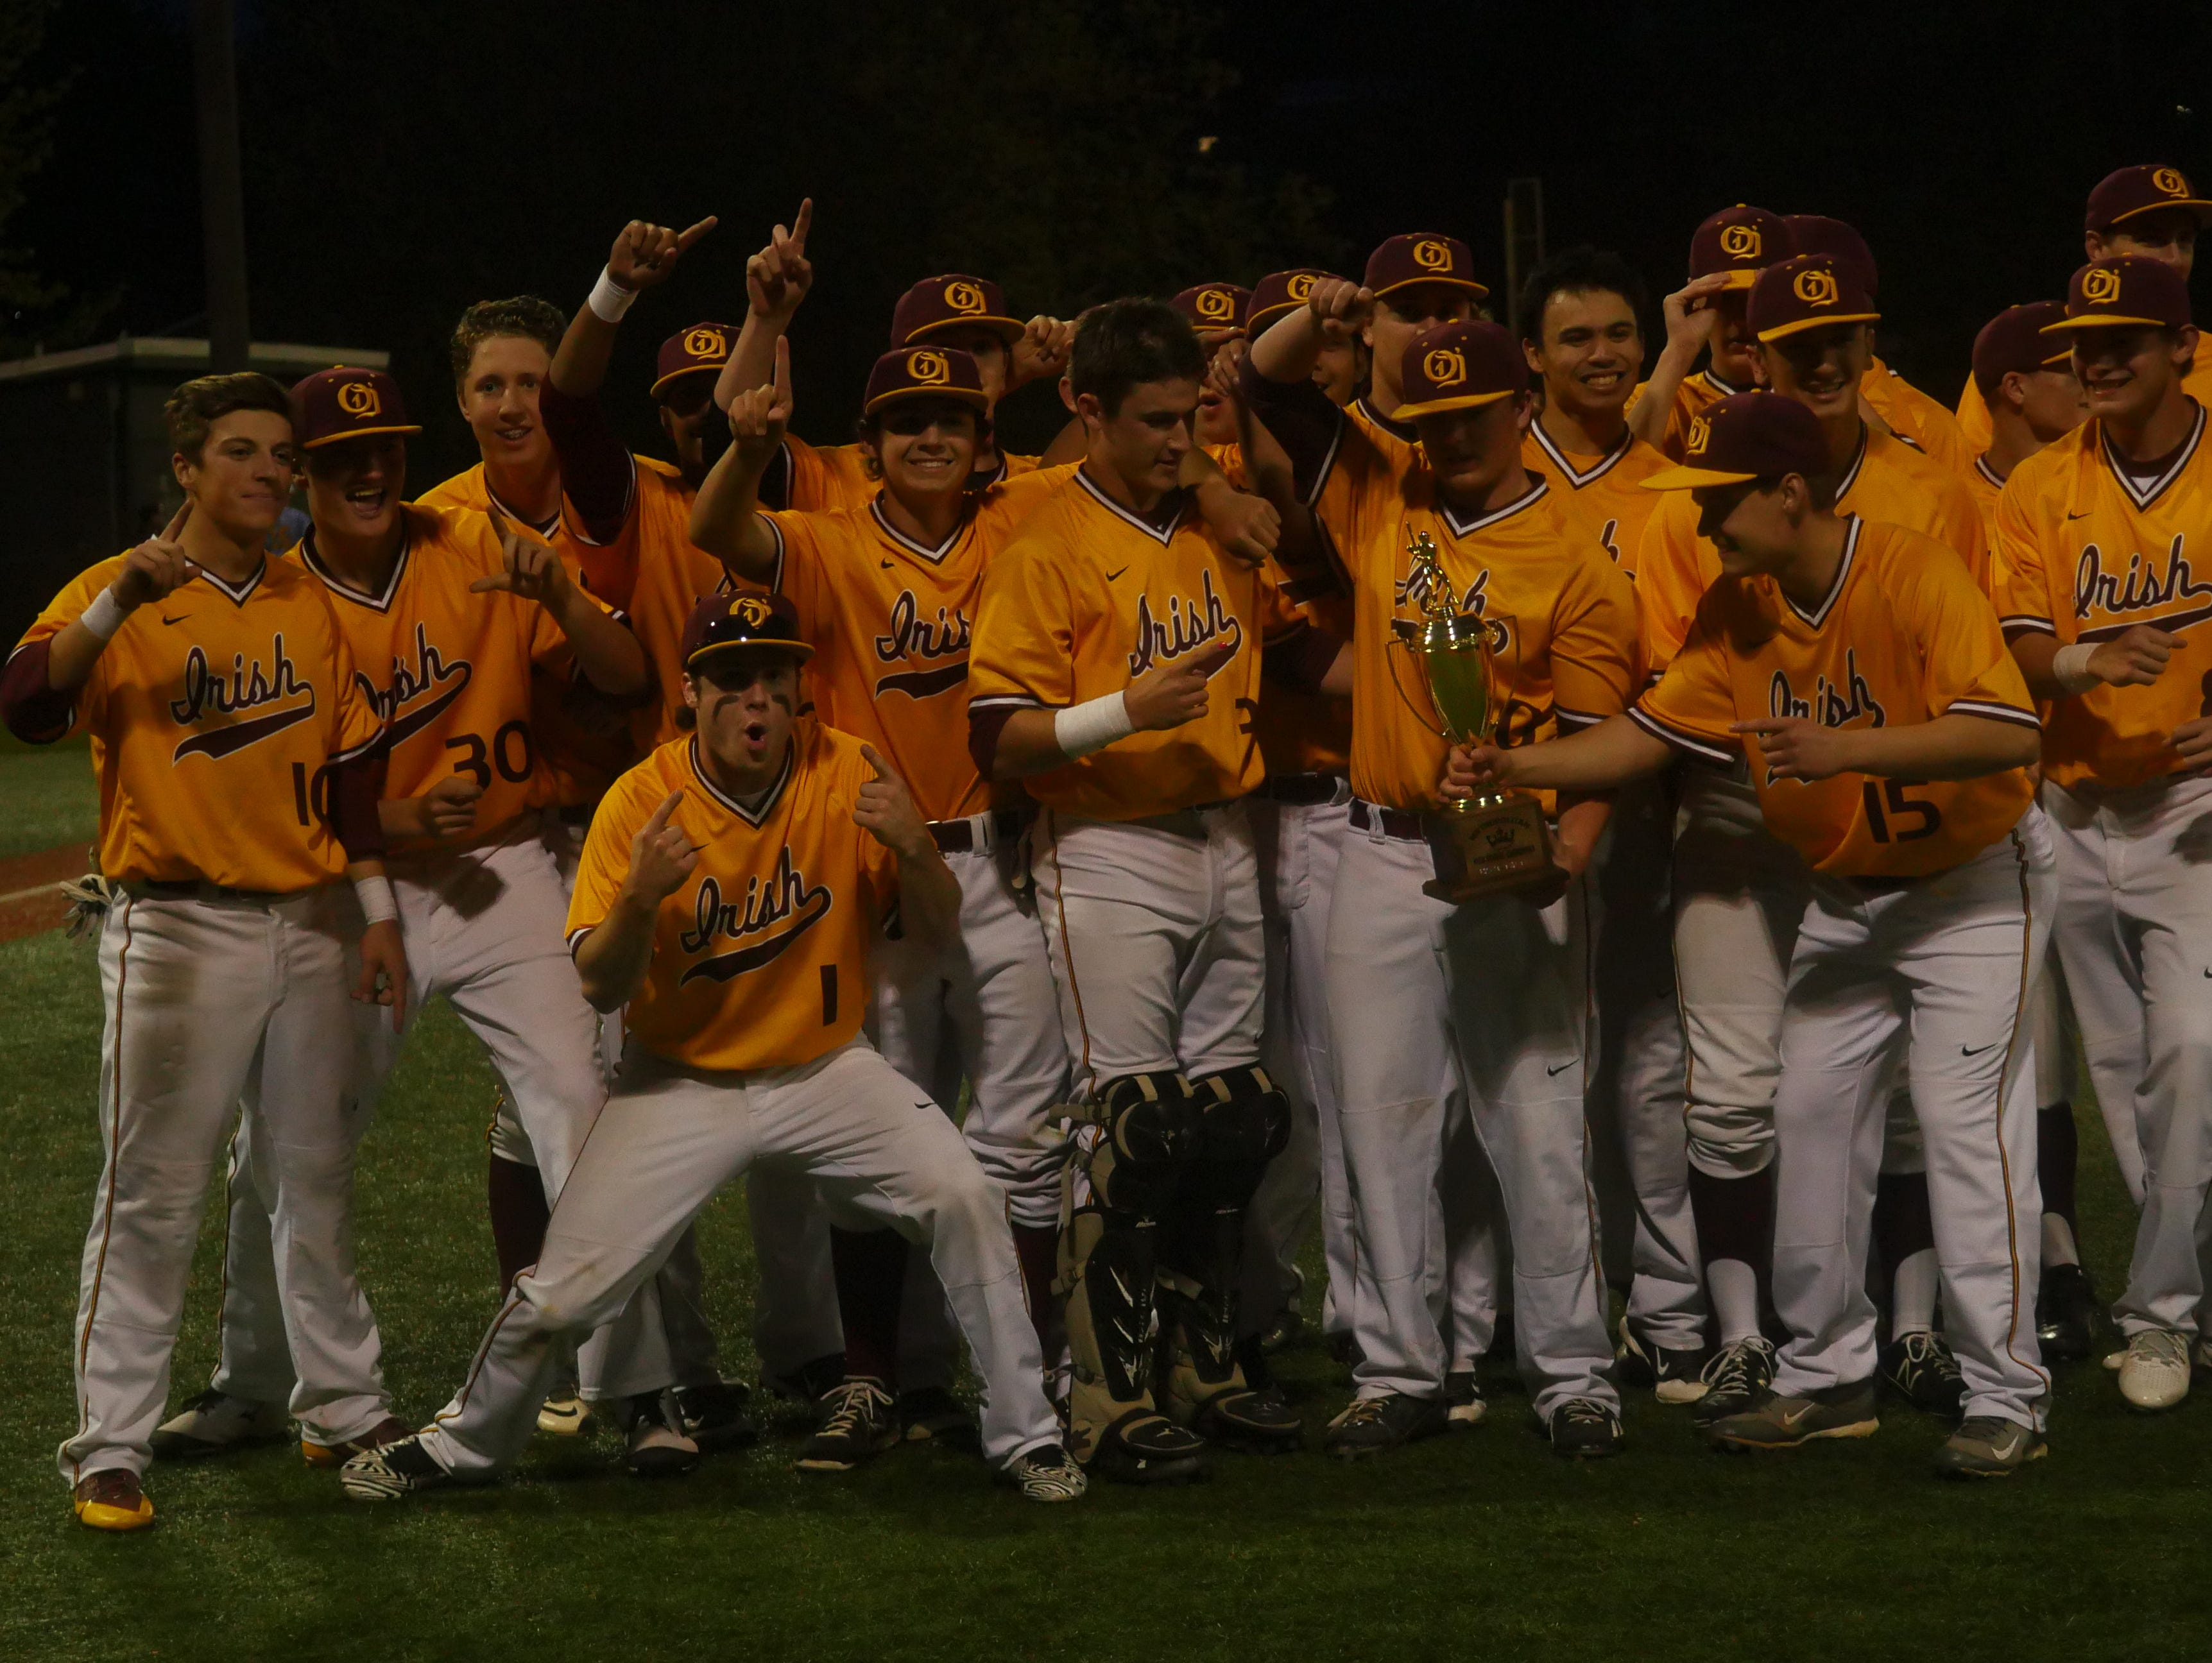 The O'Dea baseball team poses with its Metro League championship trophy.